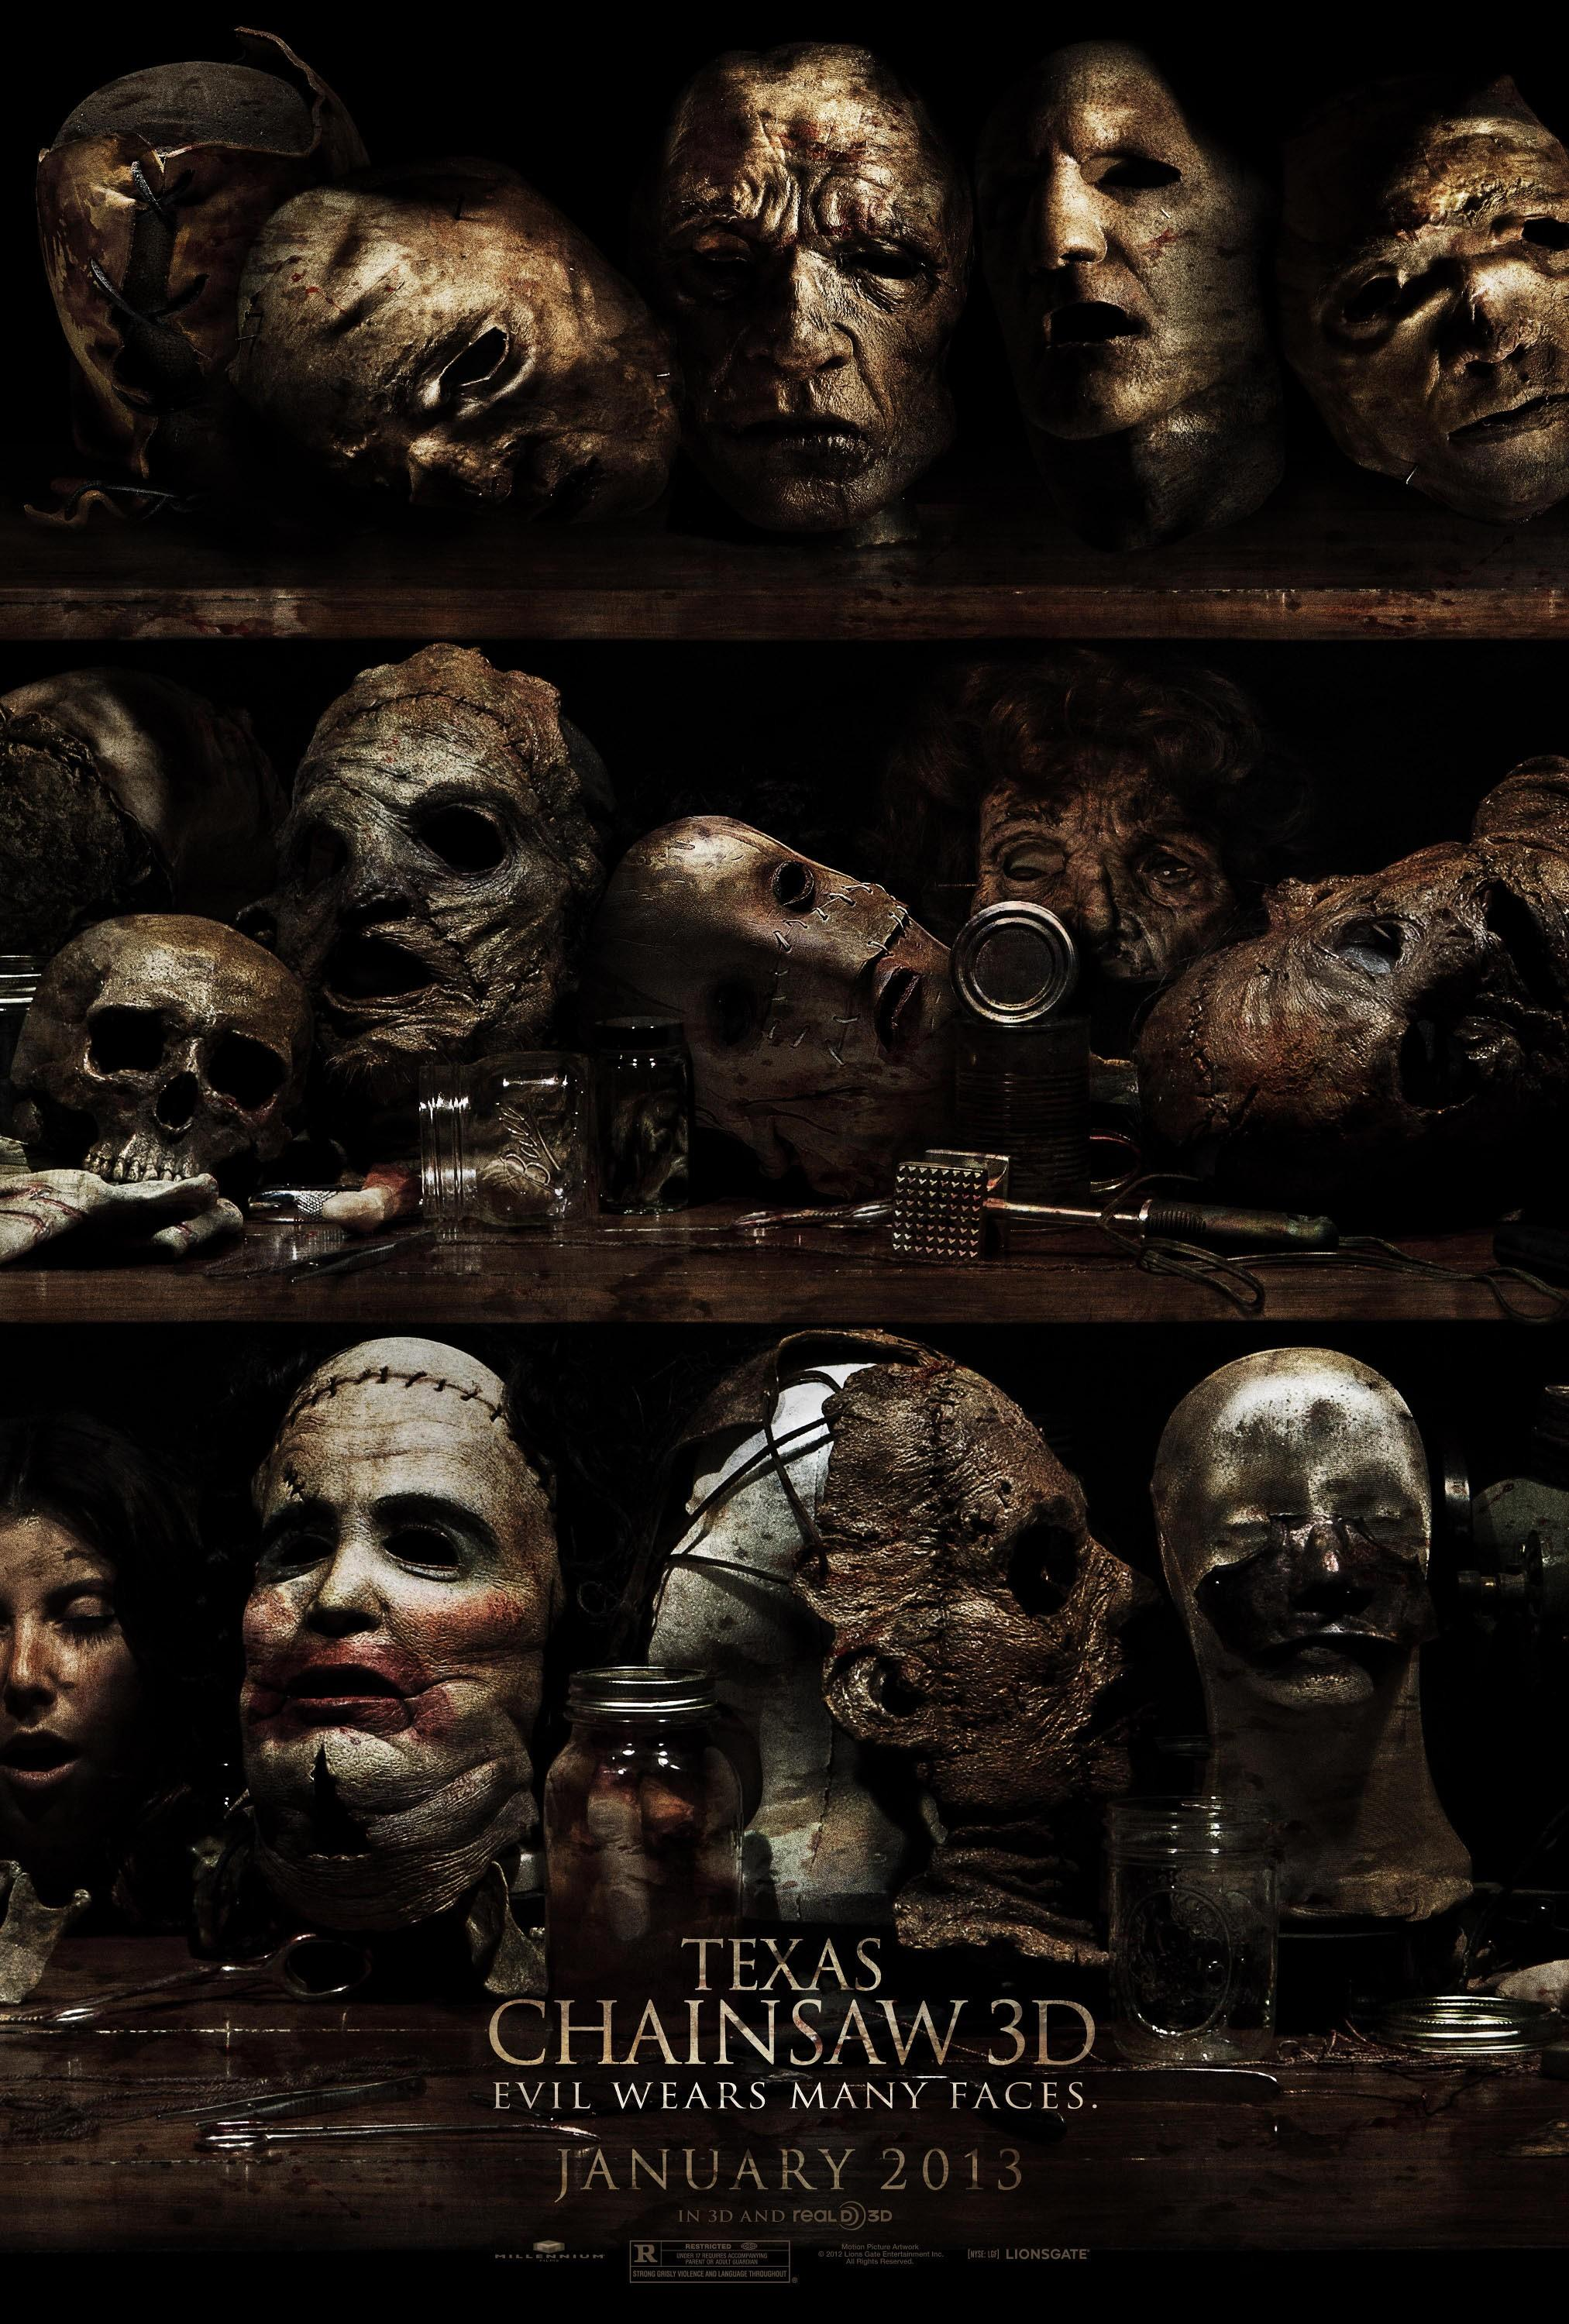 Texas Chainsaw 3D: Mega Image Sized Movie Poster - Internet Movie Poster Gallery Prix